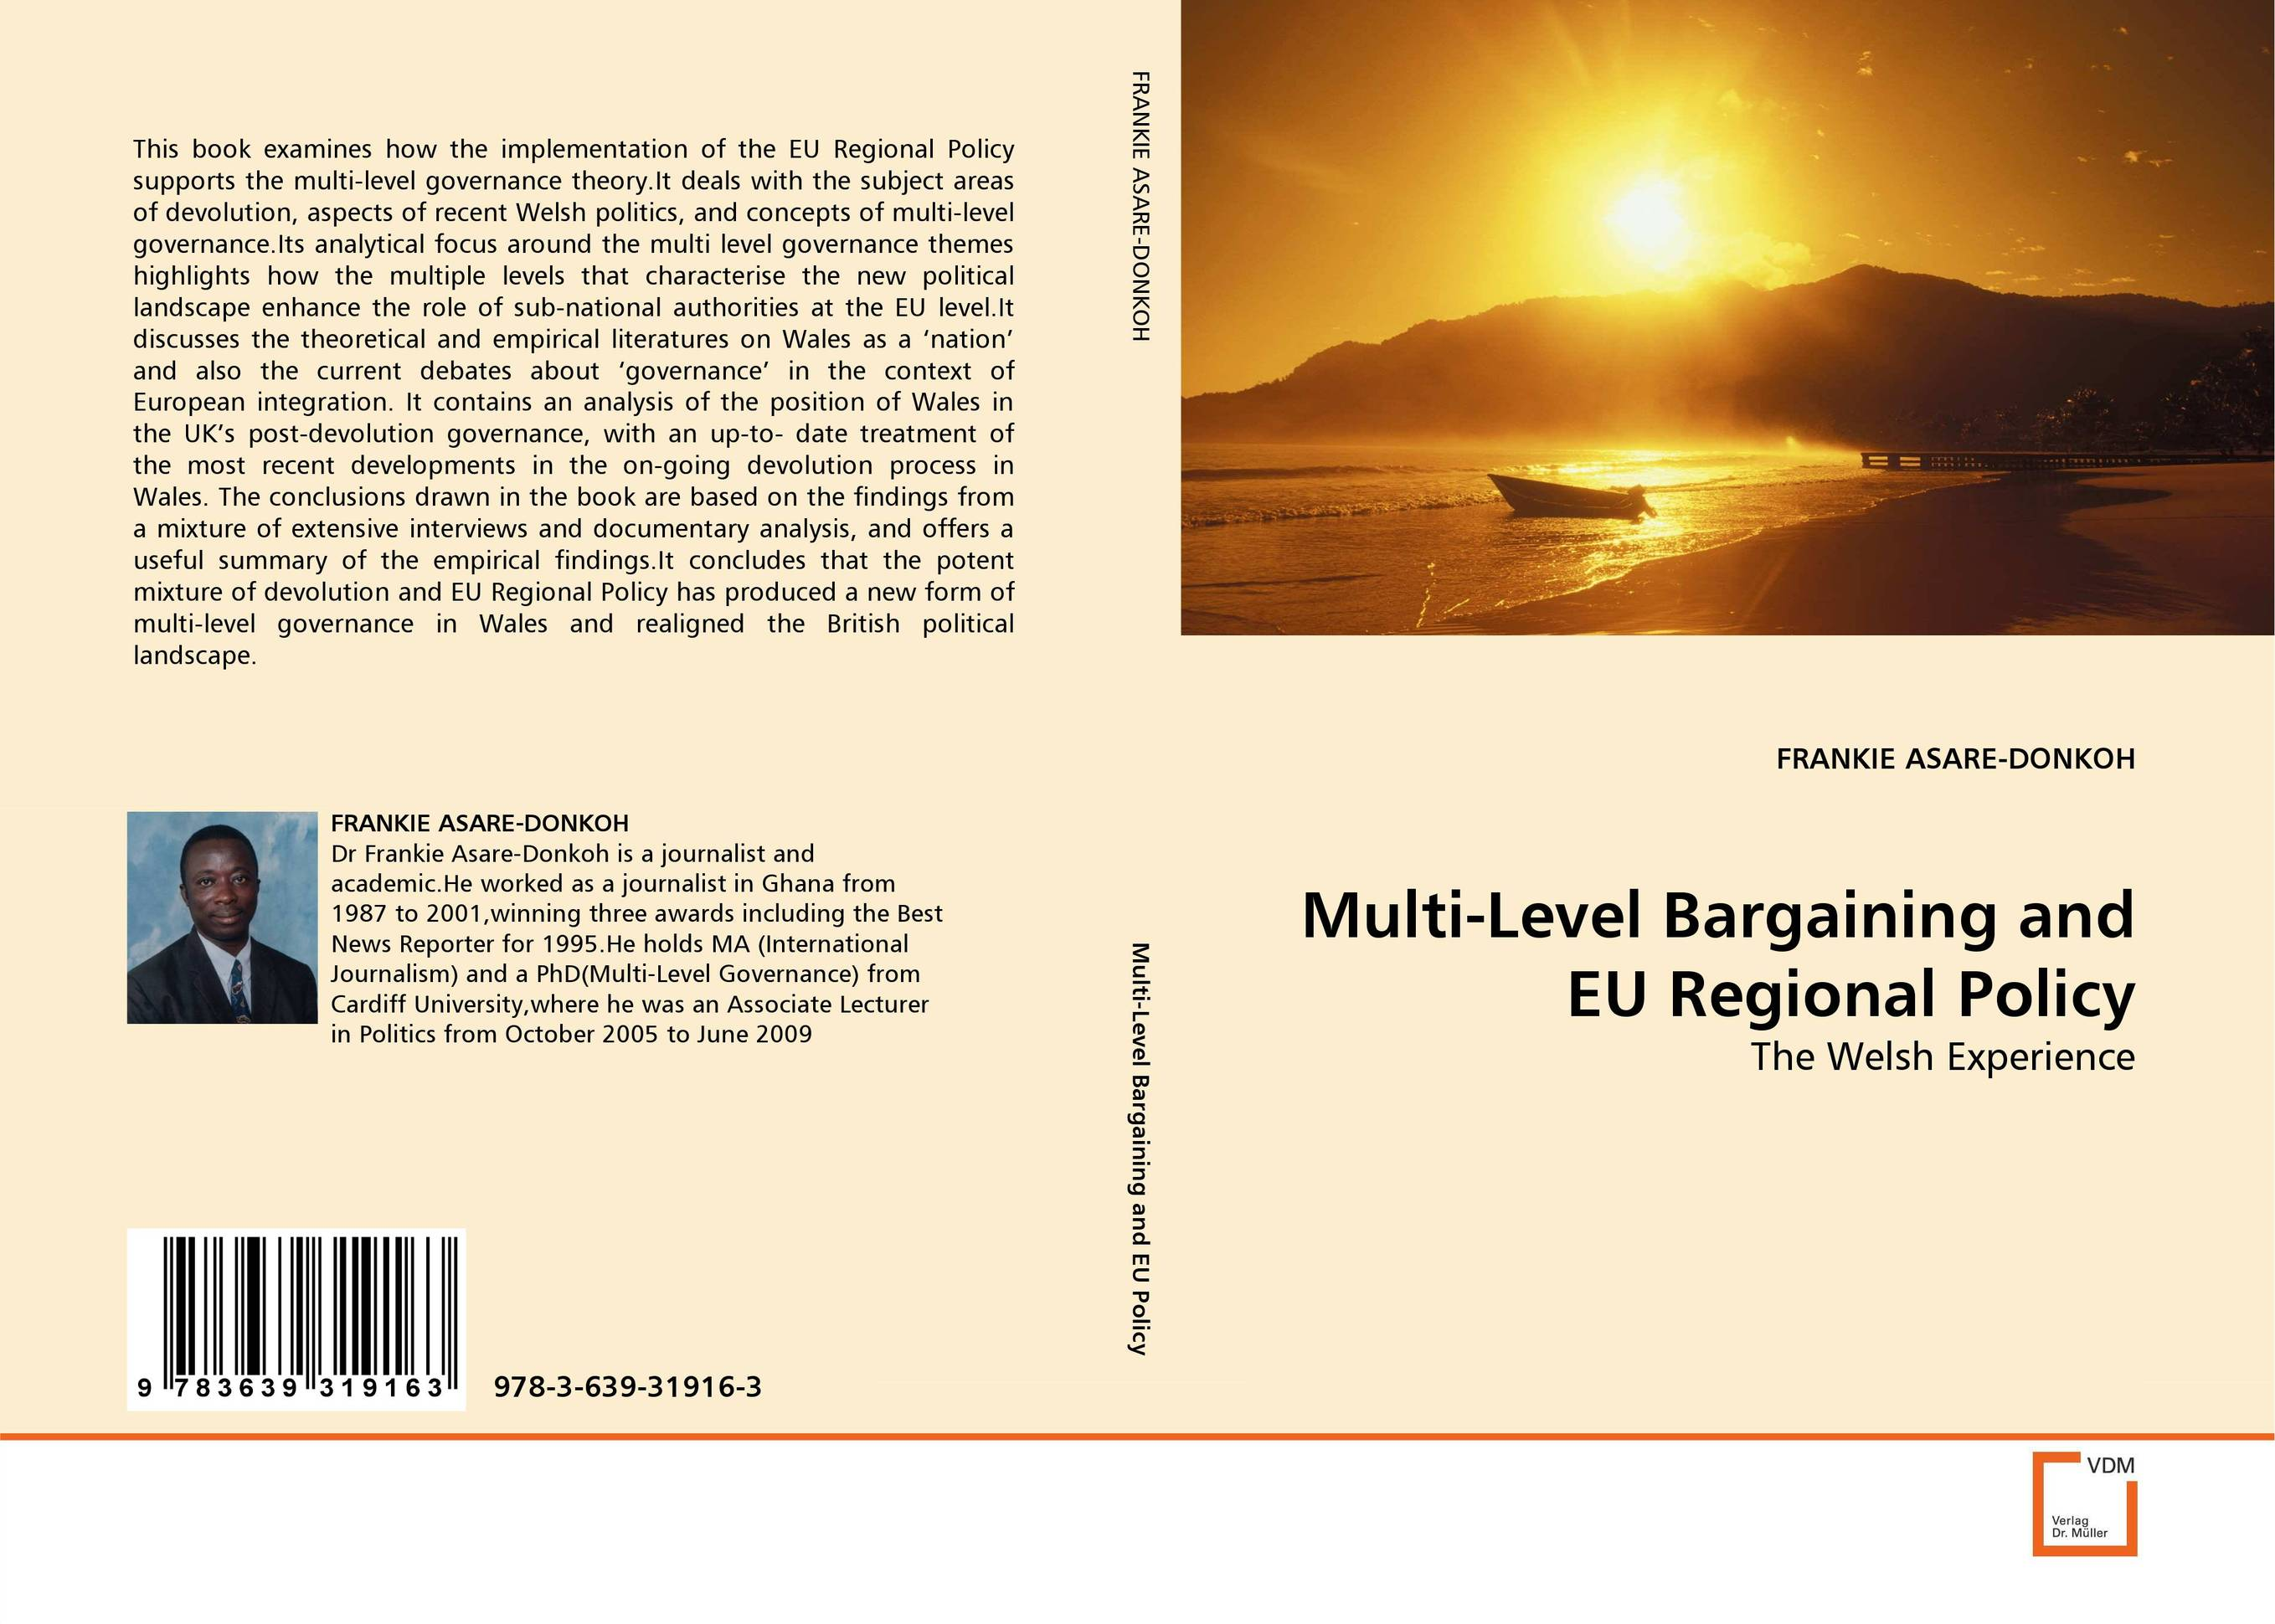 Multi-Level Bargaining and EU Regional Policy купить